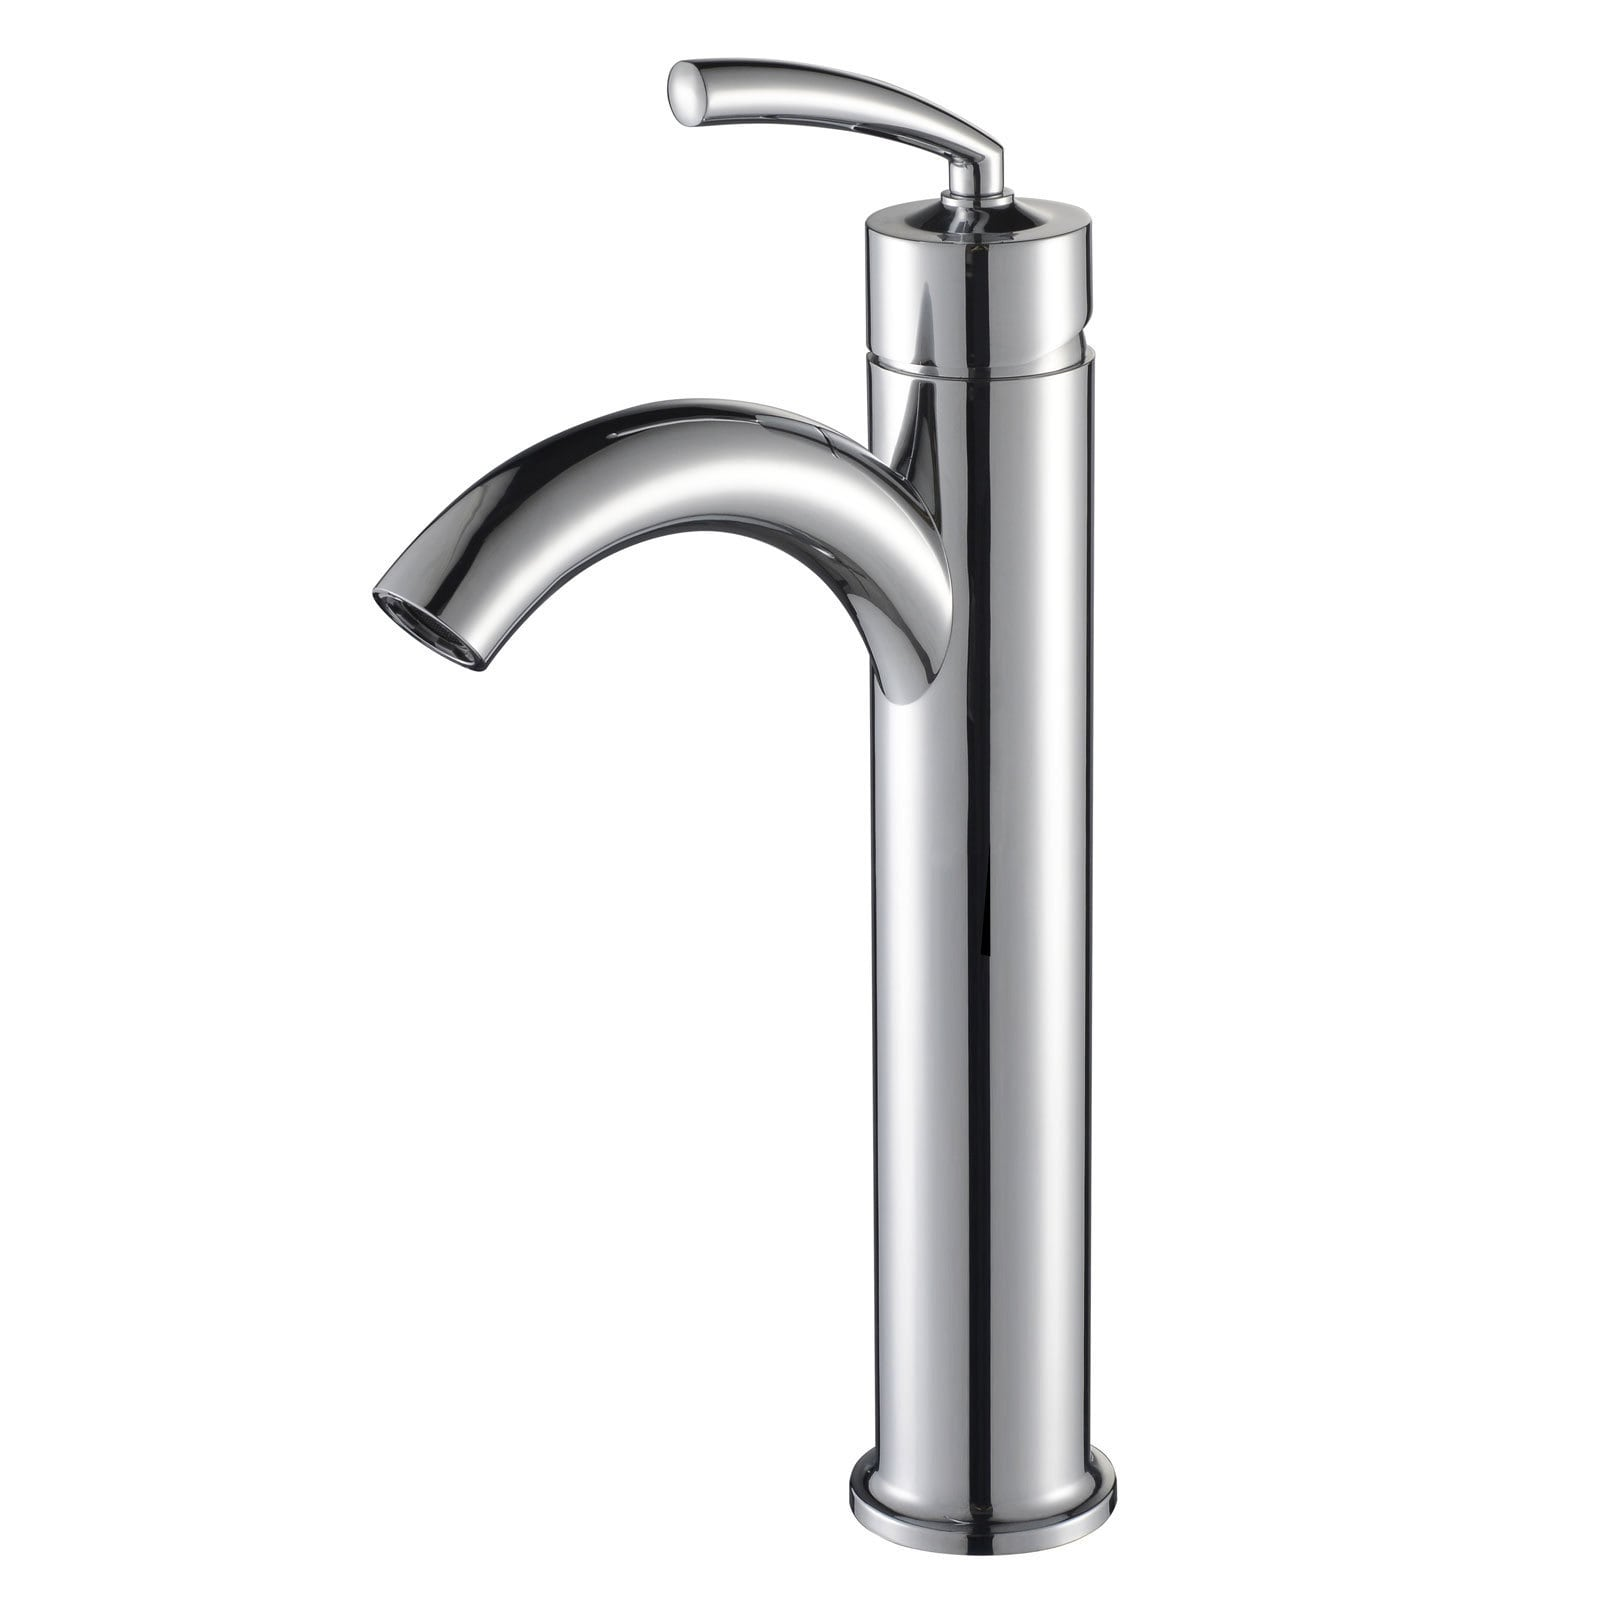 Luxury Boat Sink Faucet Ideas - Faucet Products - austinmartin.us